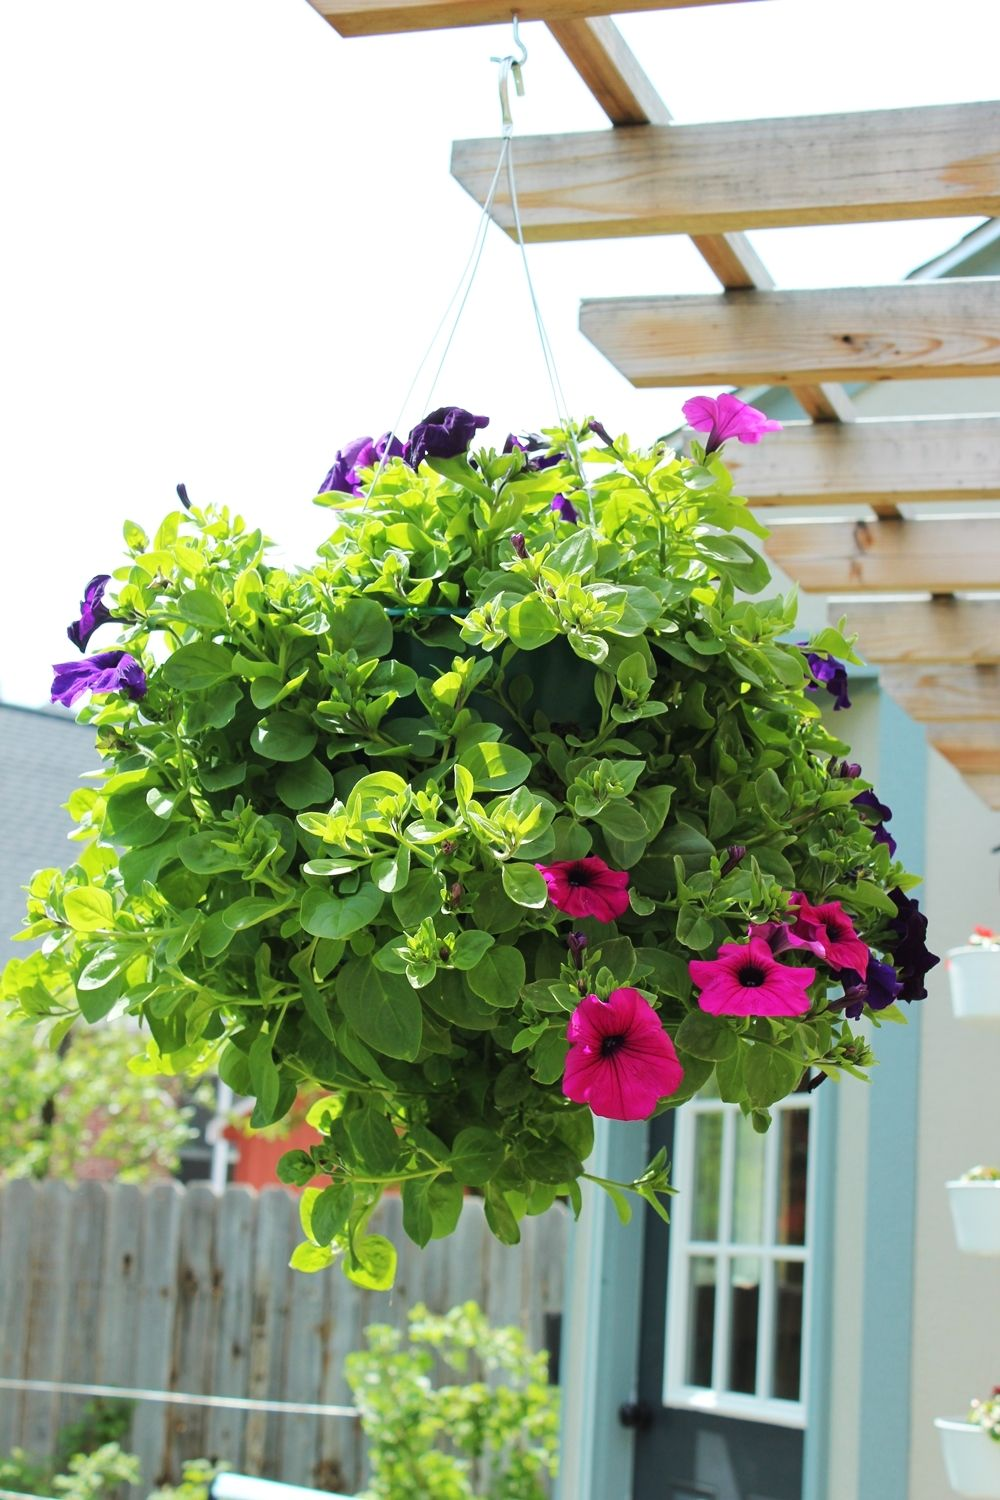 How to Plant a Professional-Looking Hanging Flower Basket ...